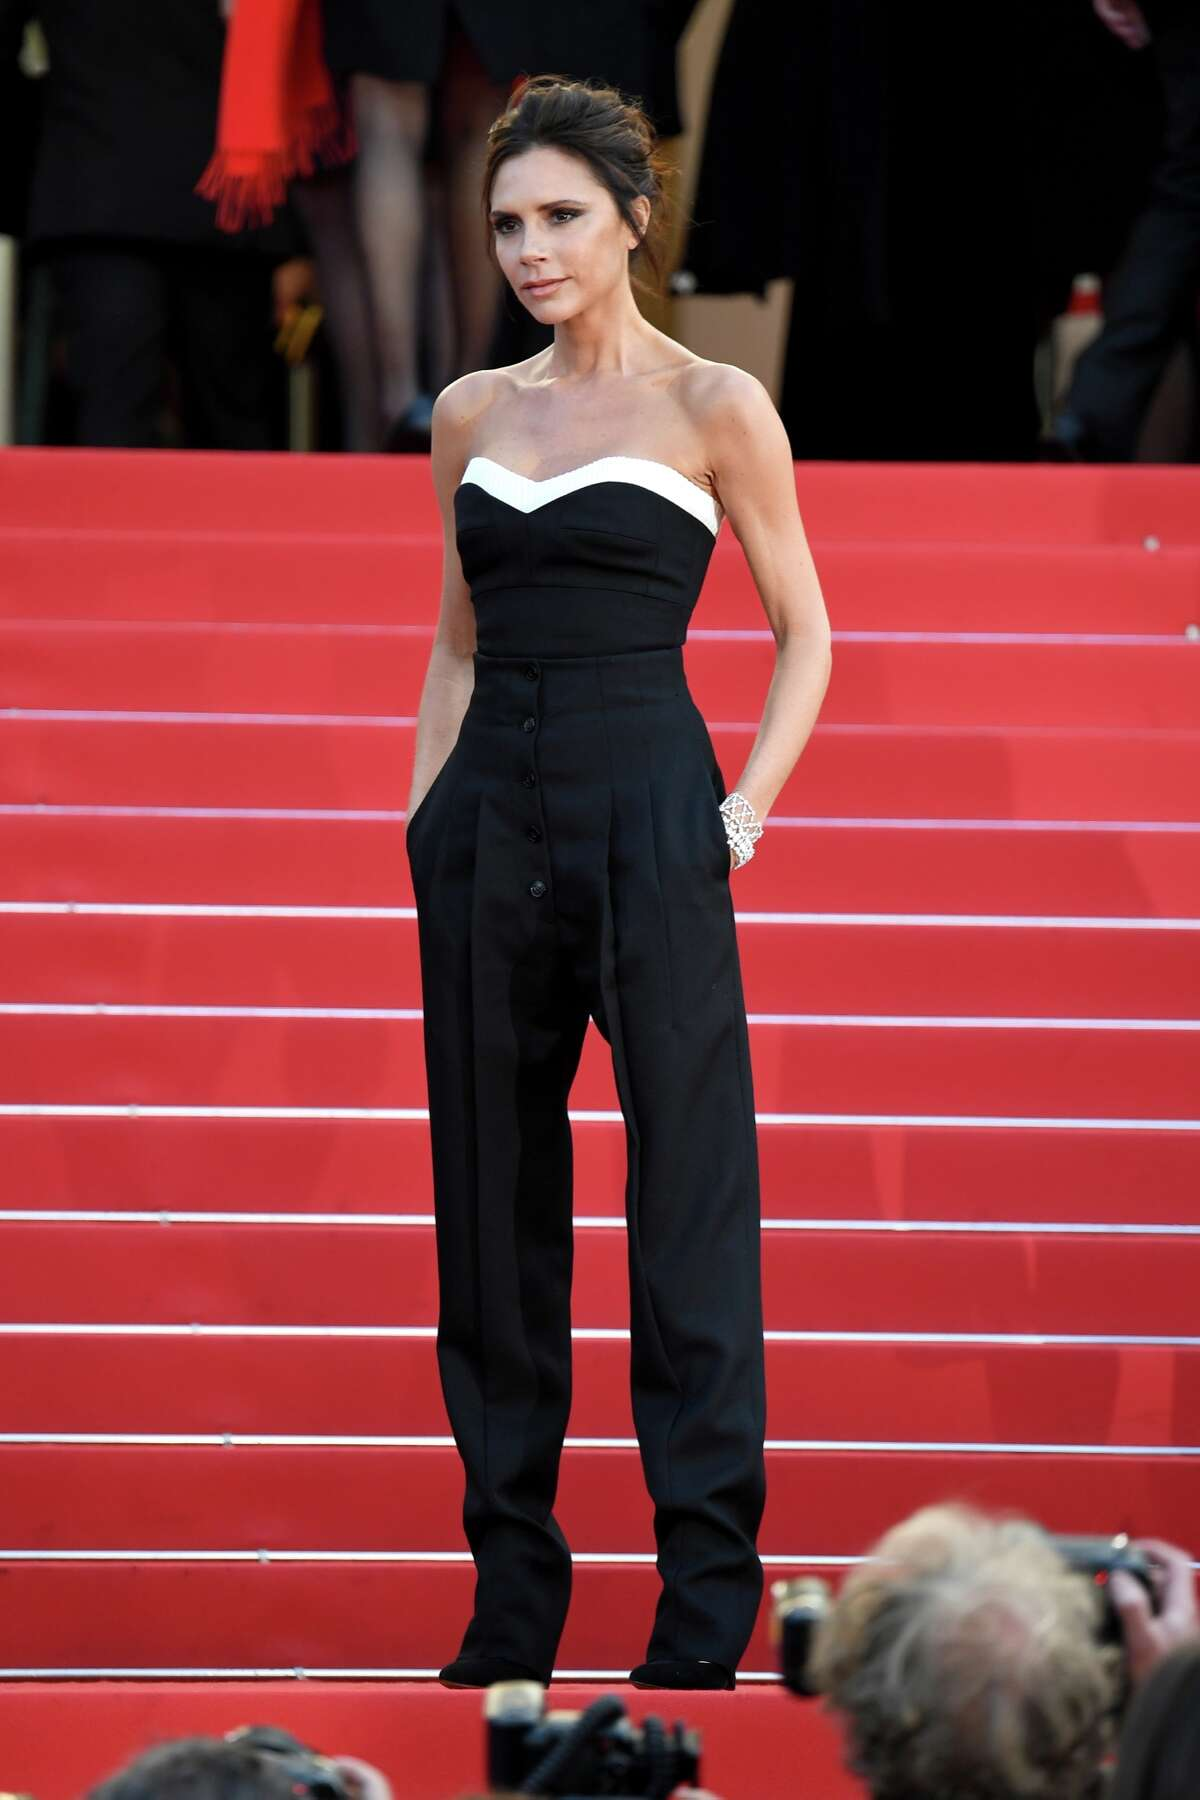 Victoria Beckham is partnering with Target on a new clothing line. Click through to see other celebrities with clothing lines.